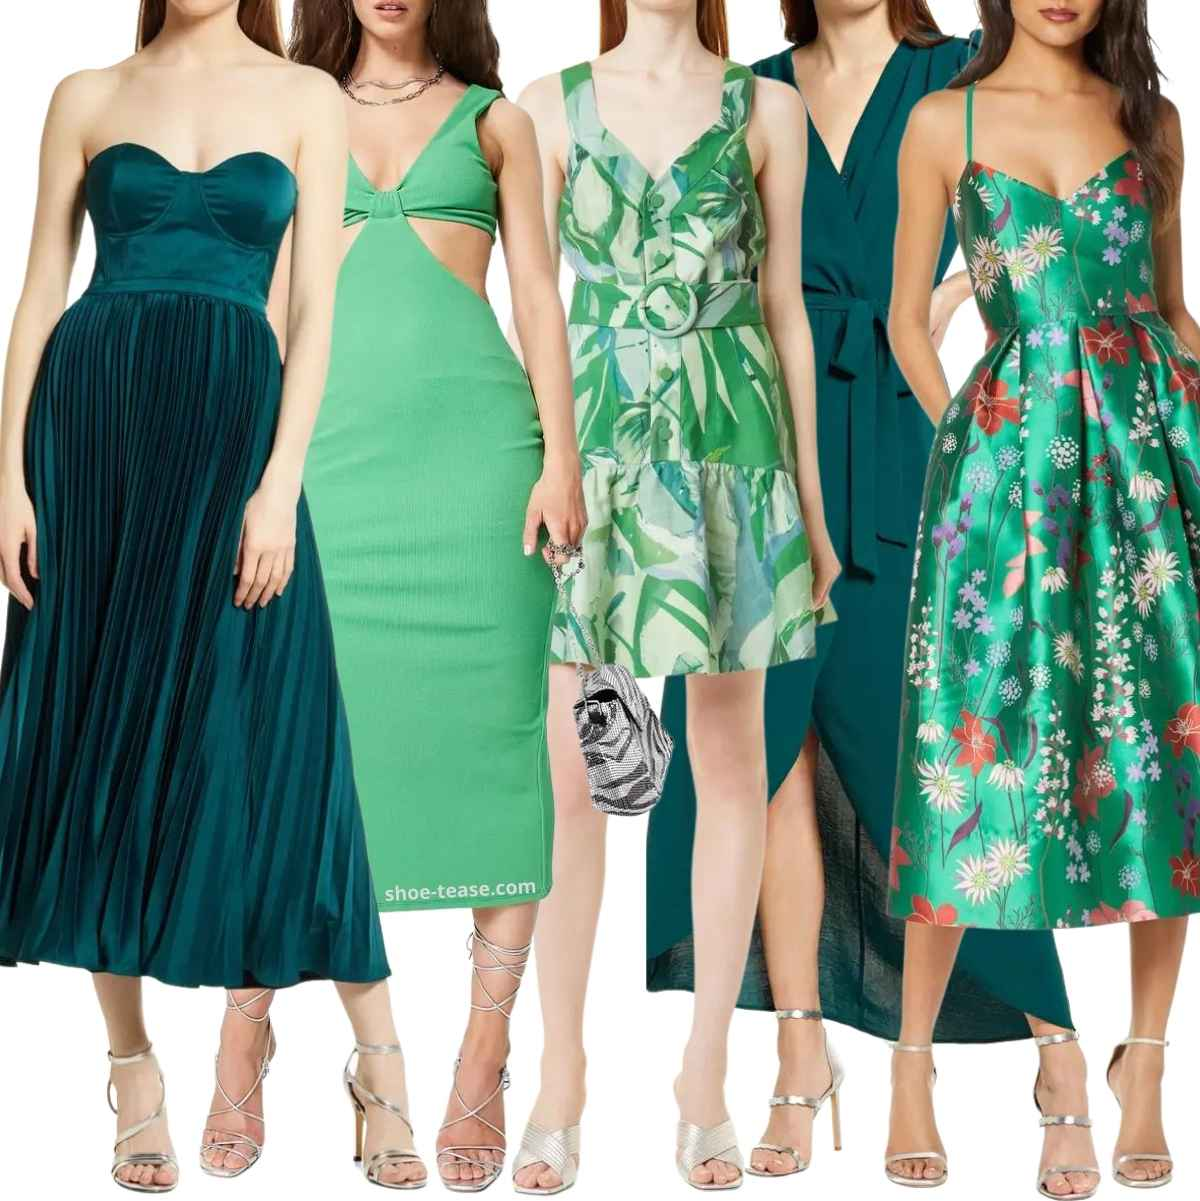 What Colour Of Shoe Goes With Bottle Green Dress